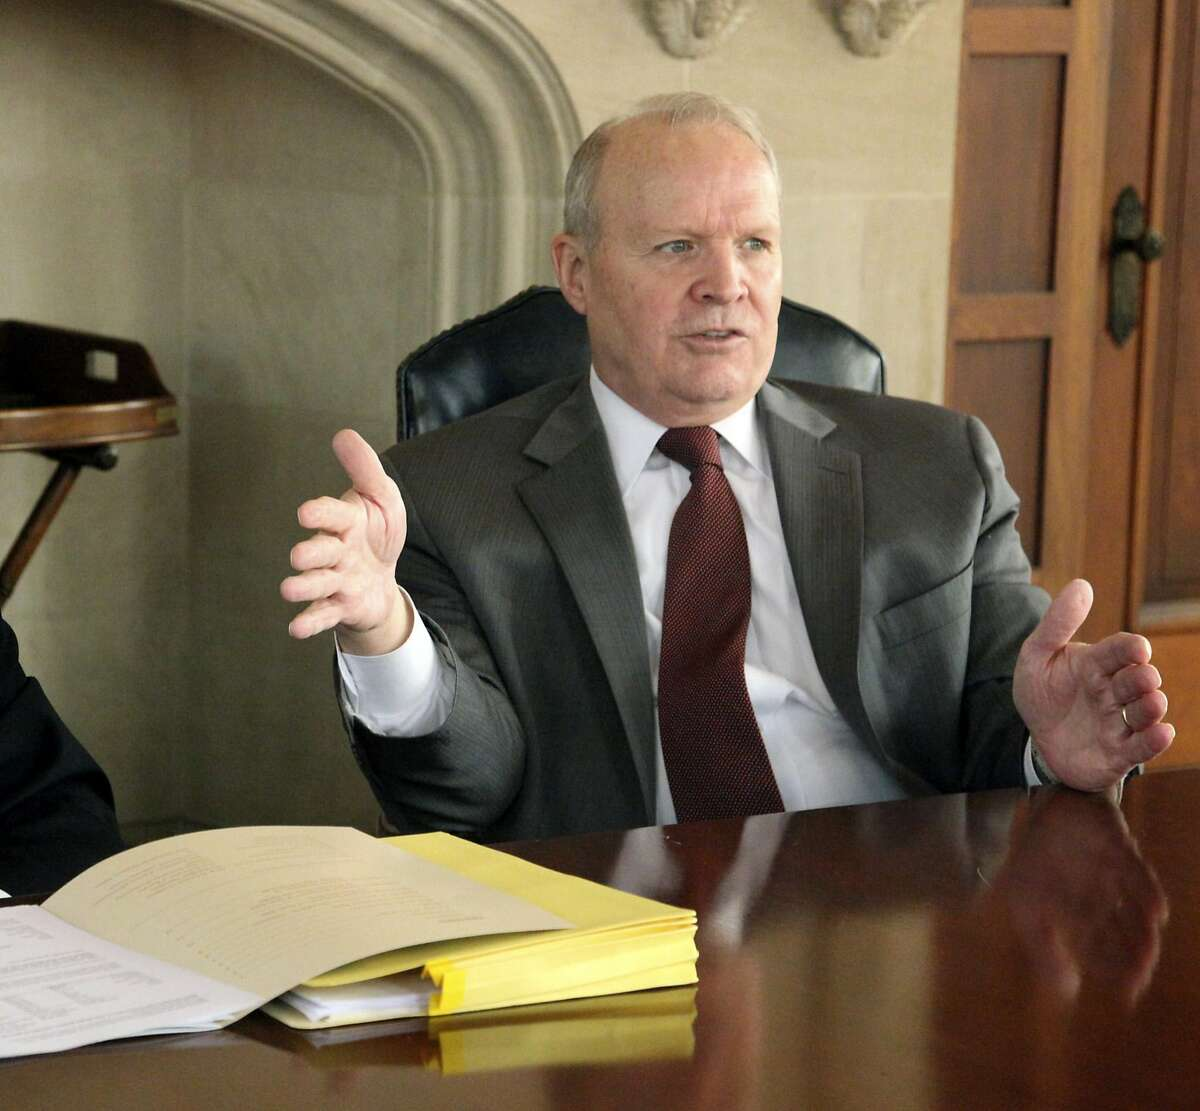 26.Larry R. Faulkner,University of Texas SystemInterim Chancellor Total pay in 2018: $148,333Pay per $1 million in institution's expenses:$41